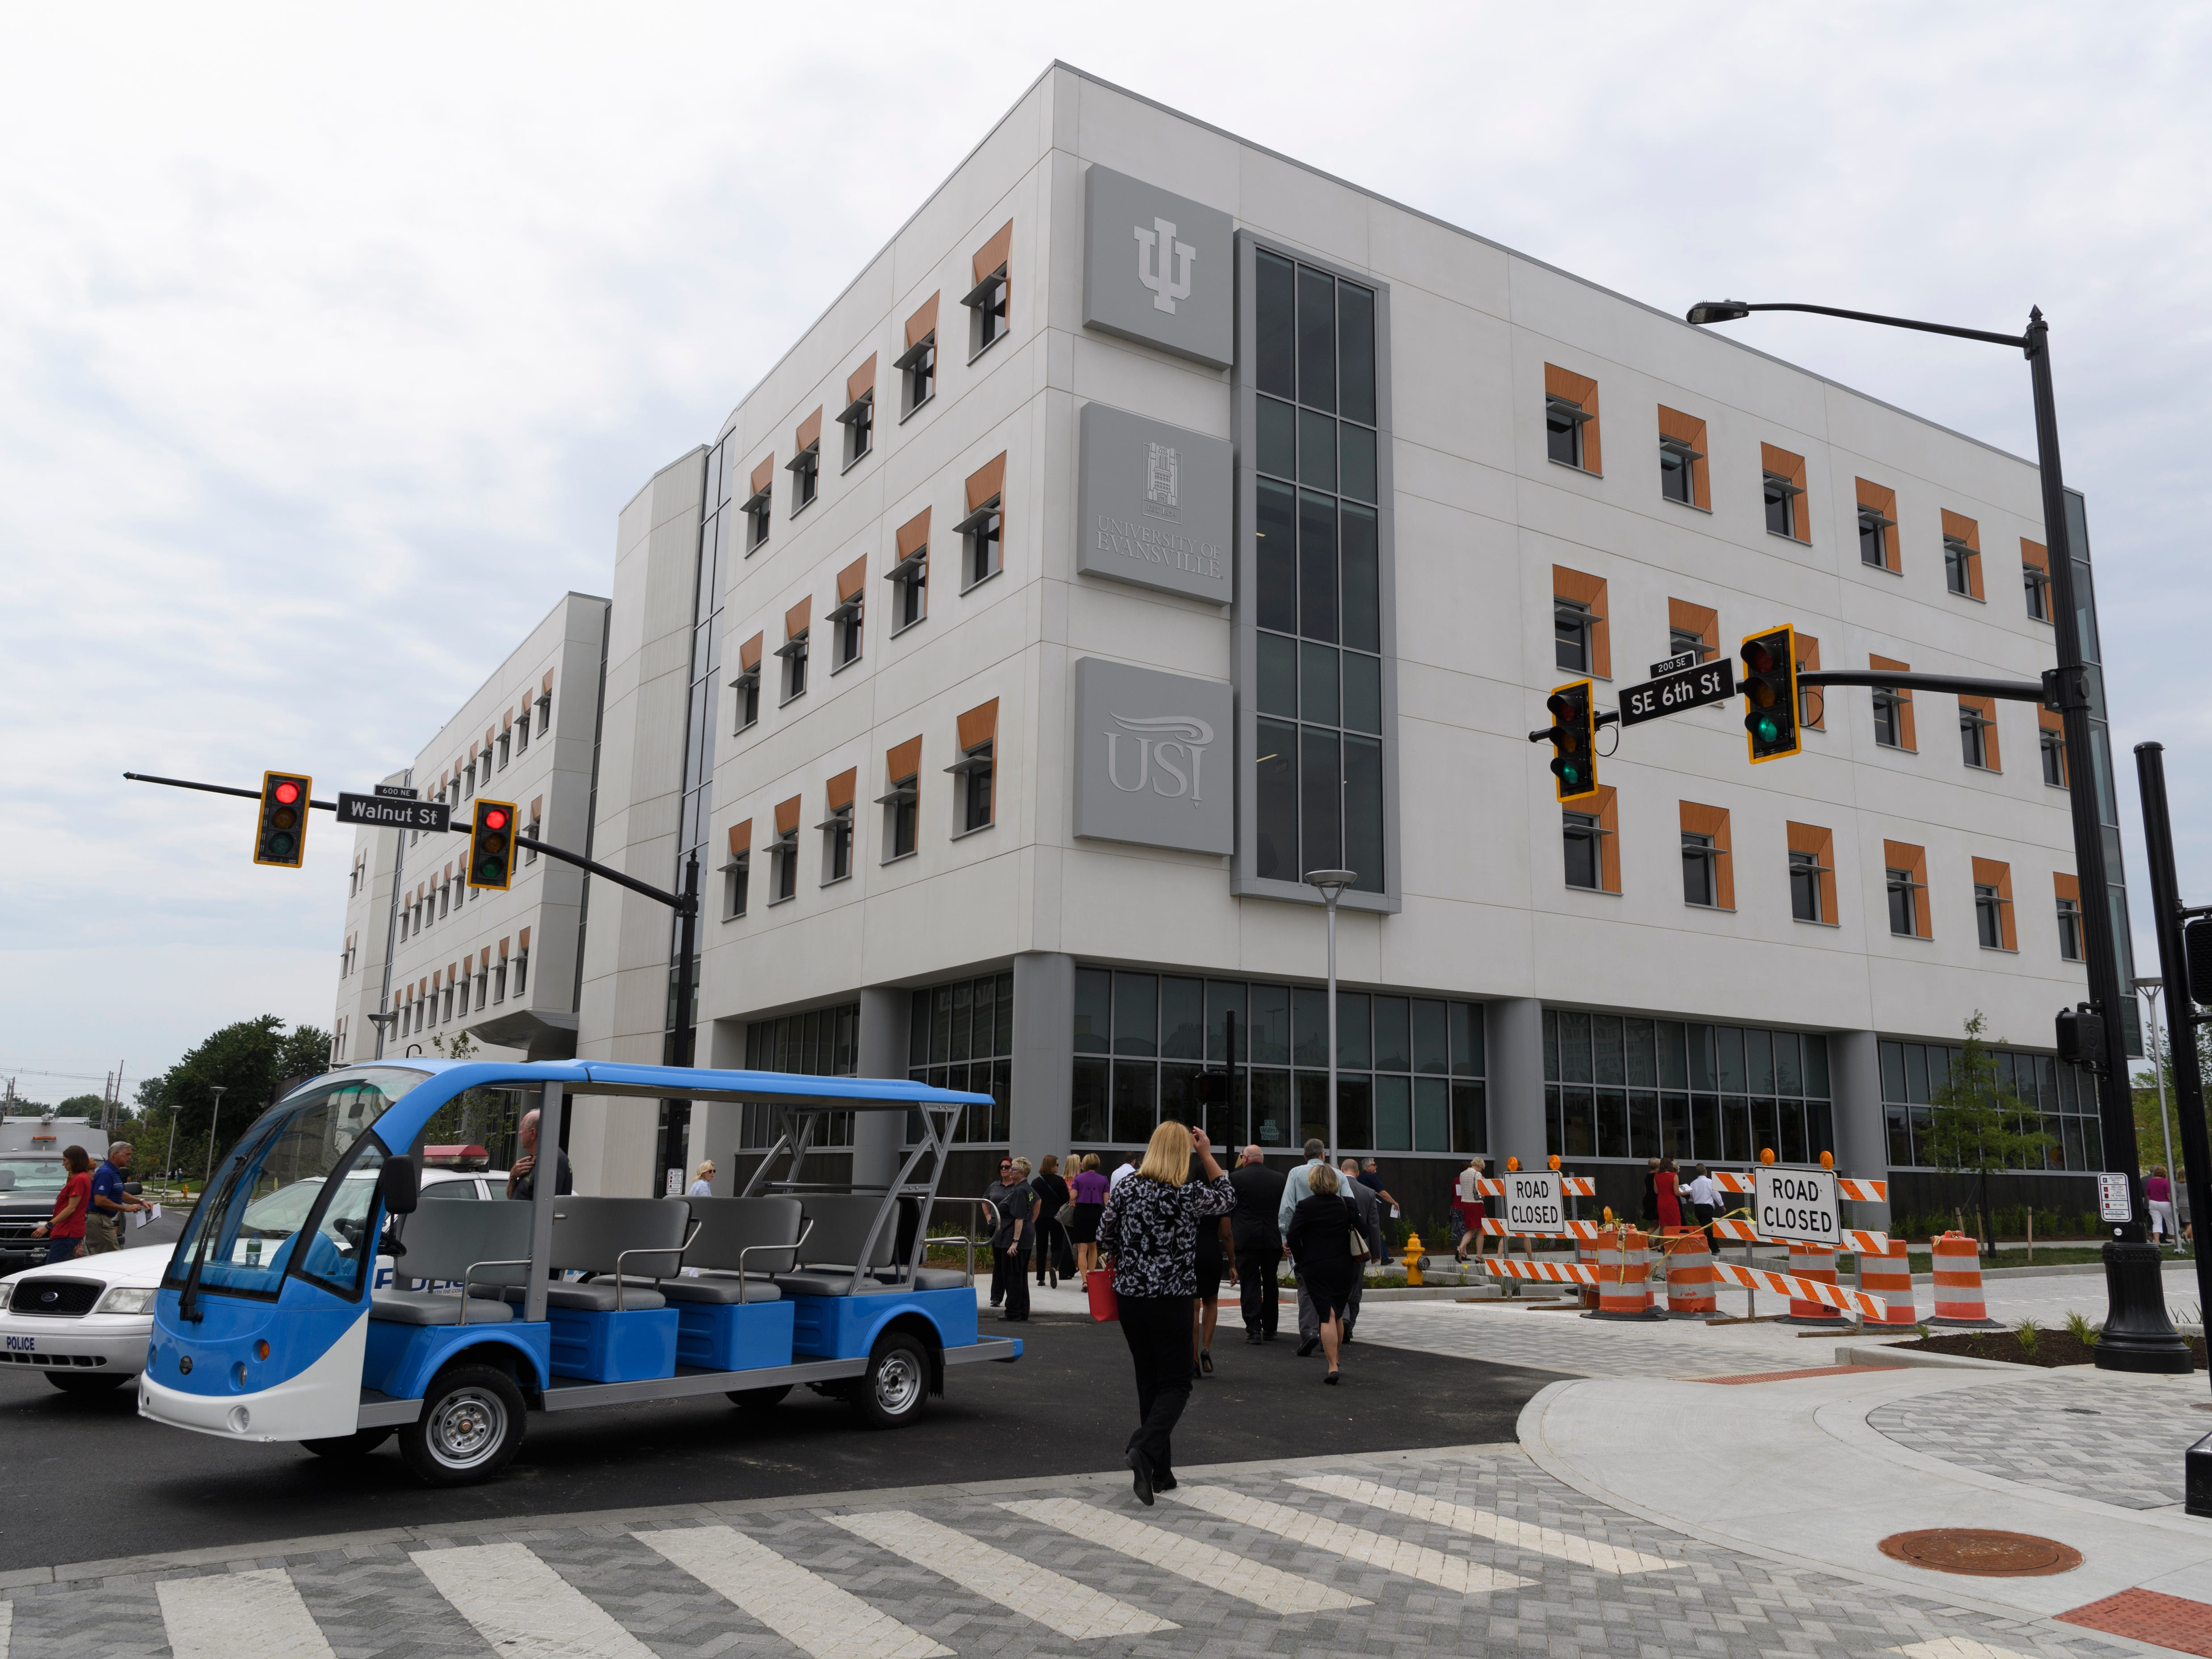 The Stone Family Center for Health Sciences offers a multi-institutional partnership between Indiana University's School of Medicine, UE, the University of Southern Indiana in Downtown Evansville.